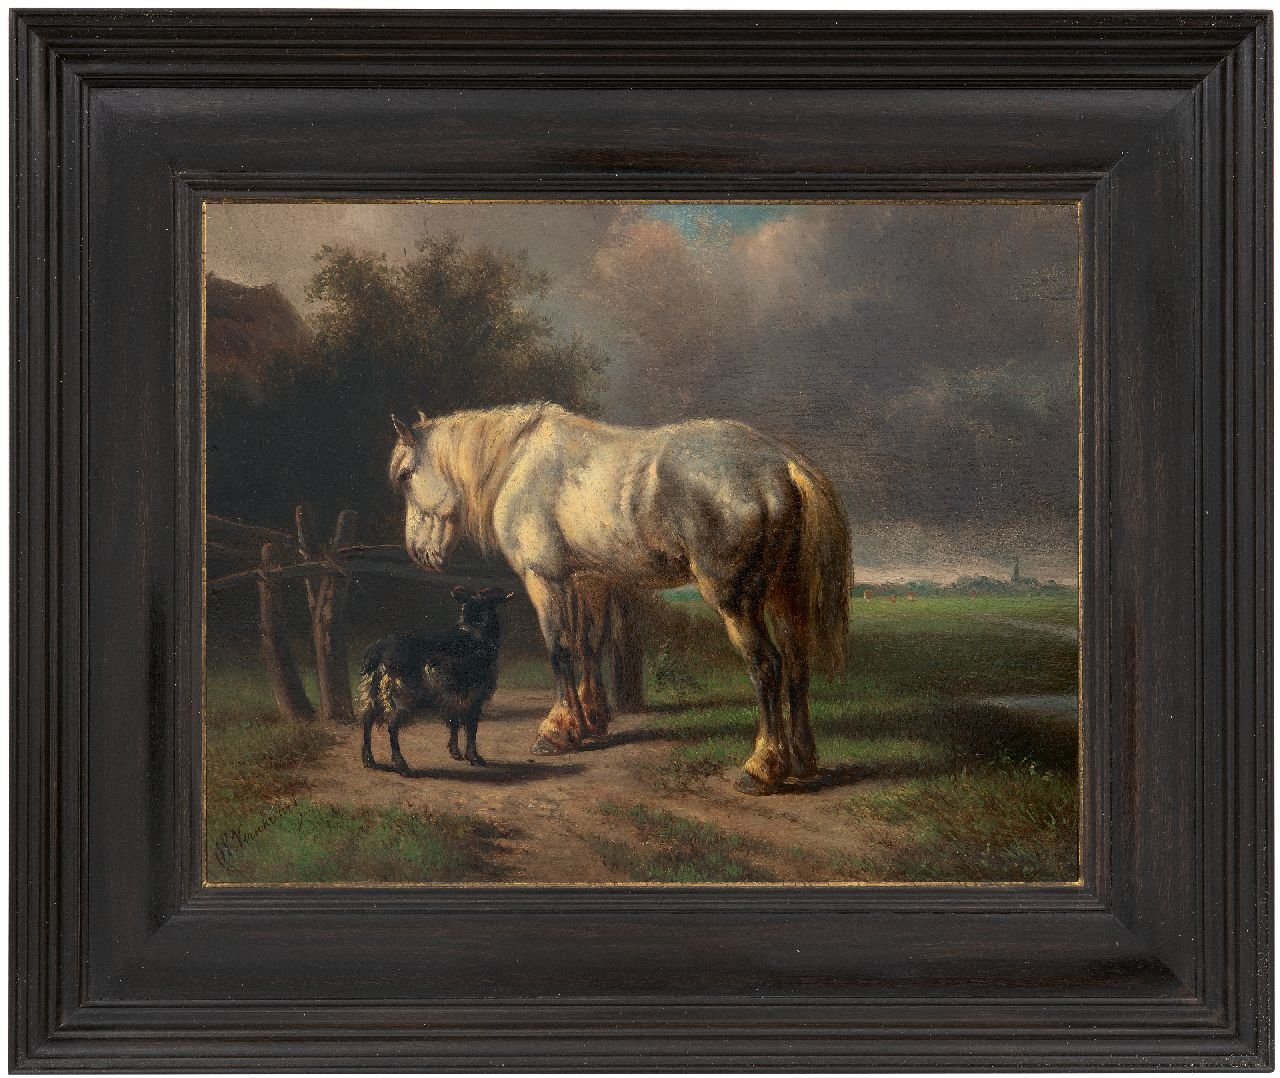 Verschuur W.  | Wouterus Verschuur | Paintings offered for sale | Horse and goat near a fence, oil on panel 23.0 x 29.2 cm, signed l.l.